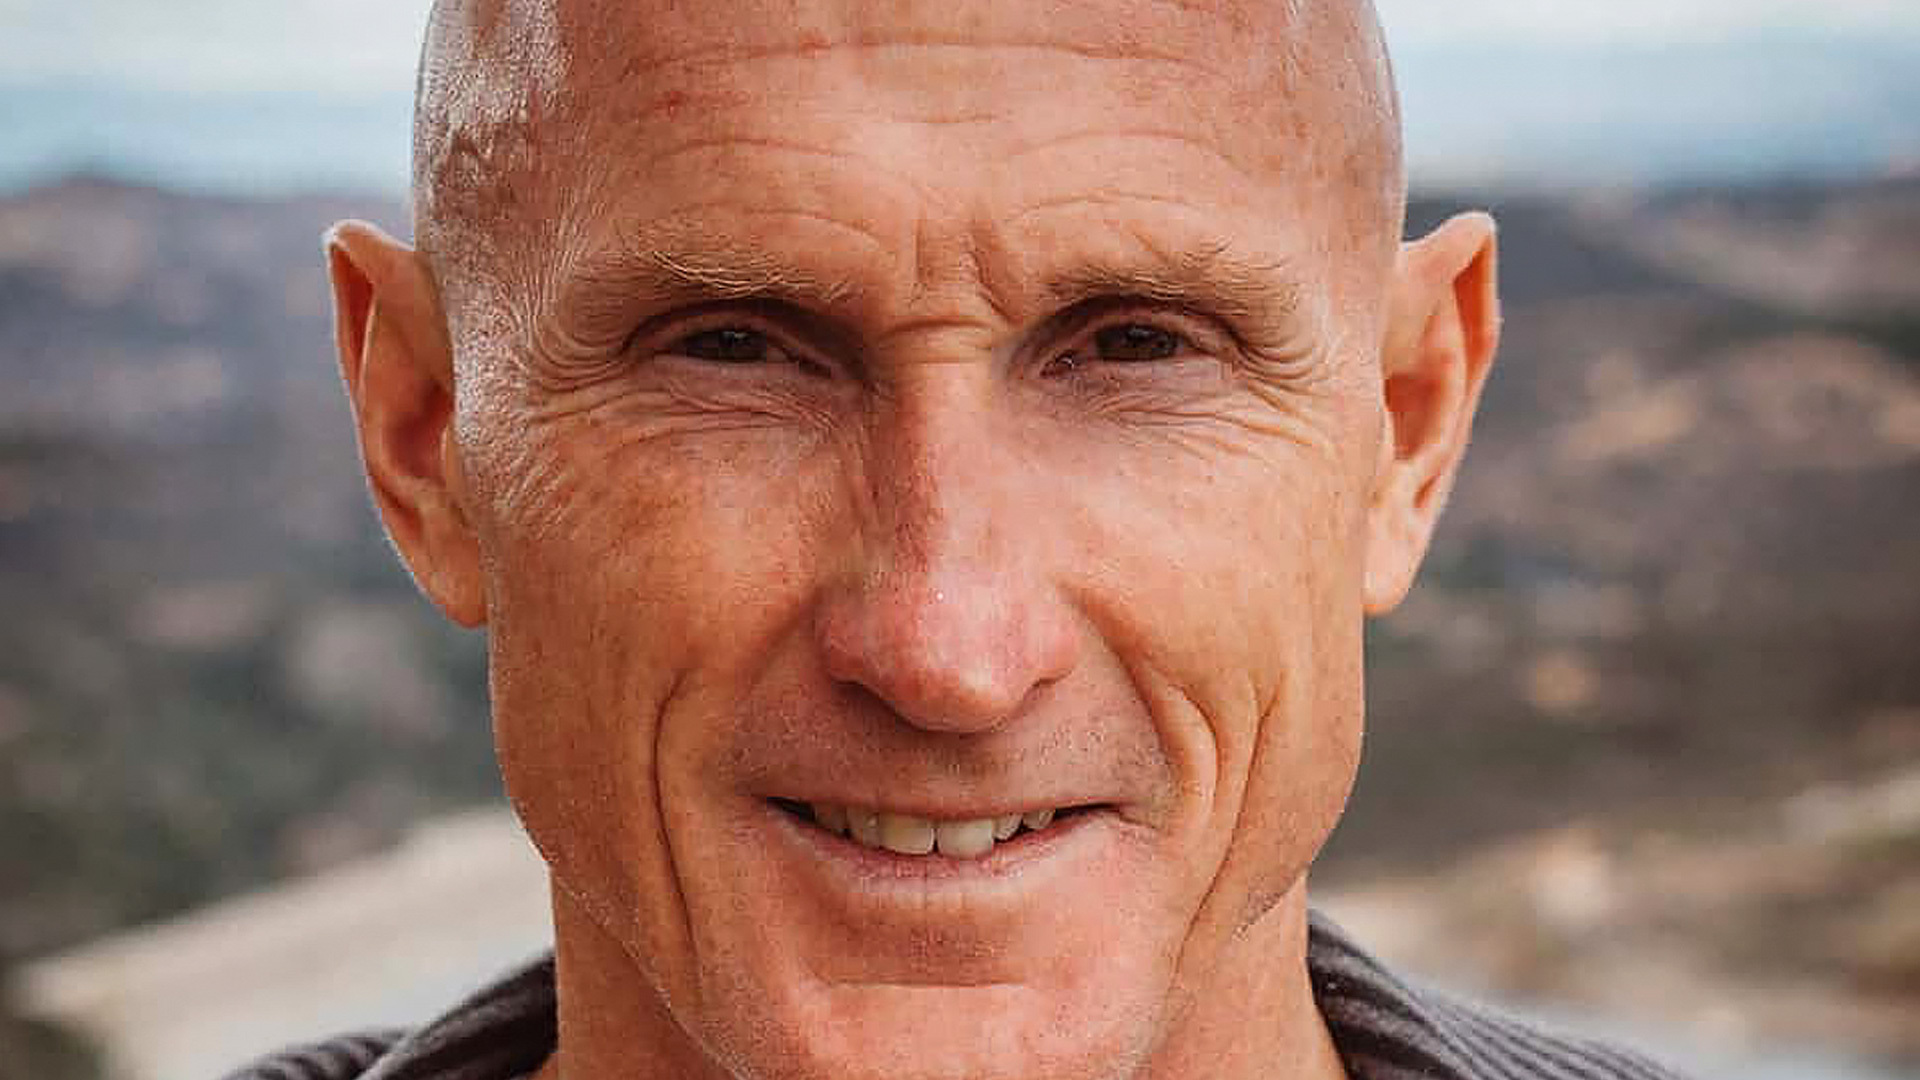 Paul Chek - The Journey Of Self Management: How To Achieve Success In Business, Your Body & Life